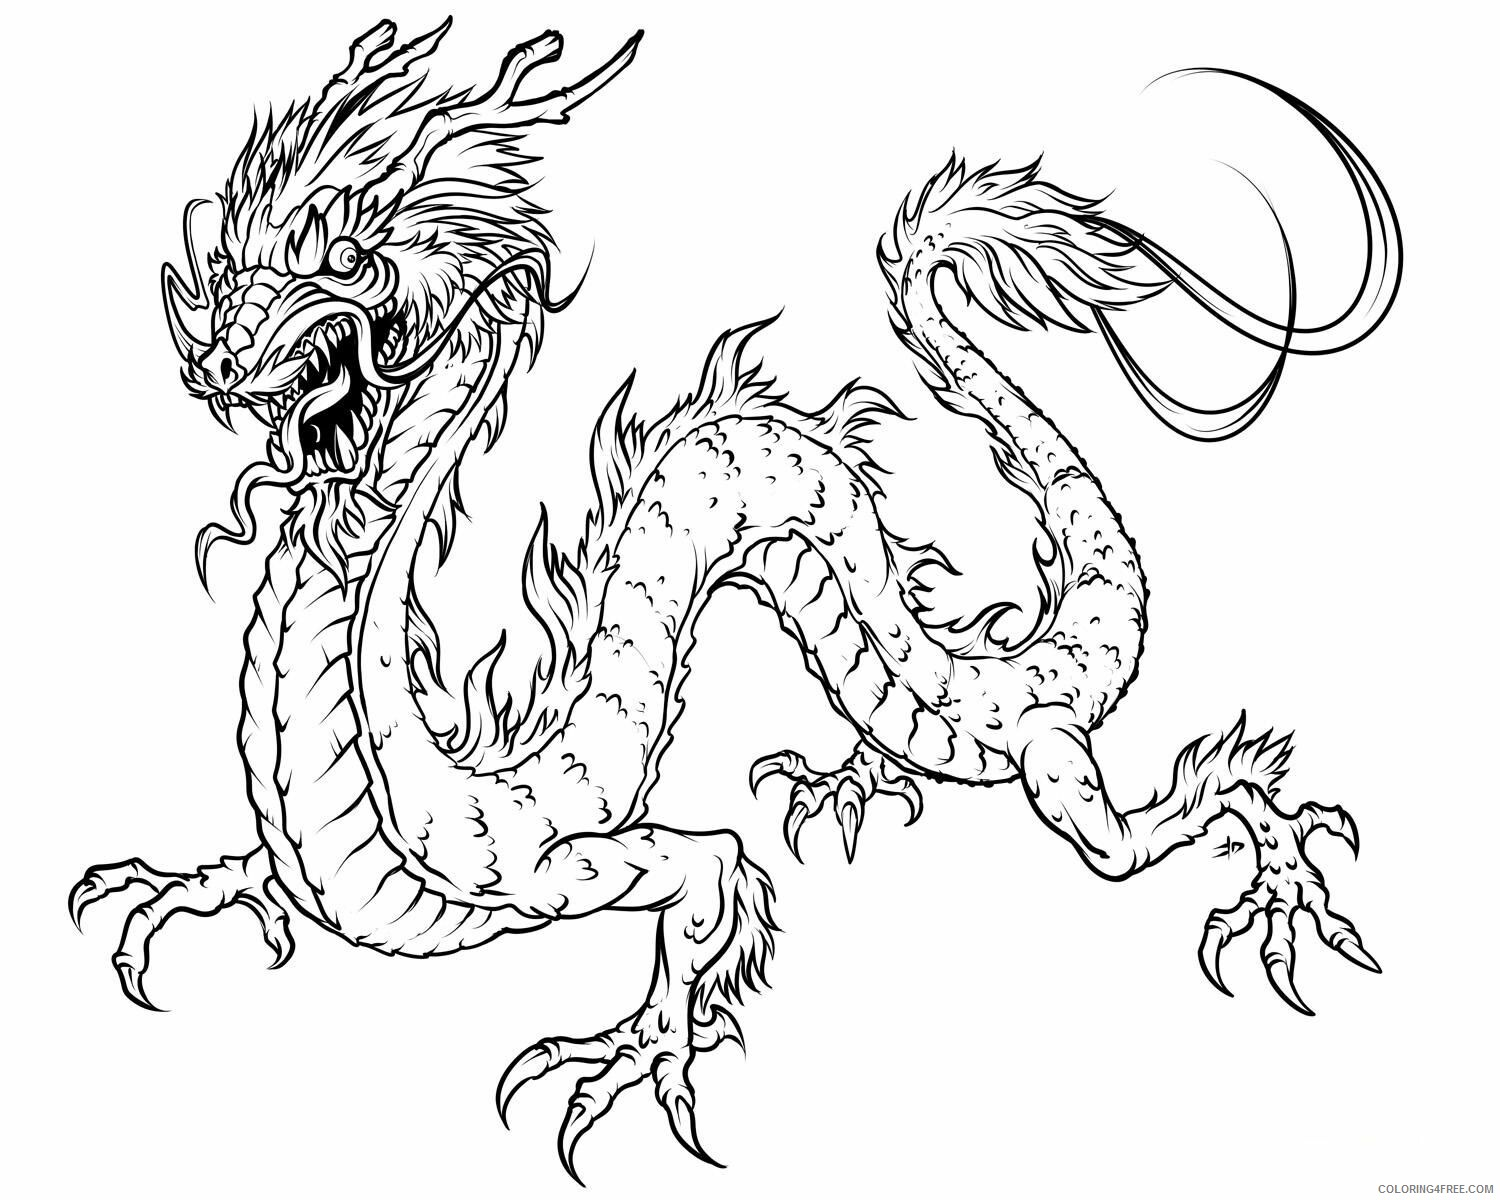 Fantasy Dragons Coloring Pages Wingless Dragon for Adults Printable 2021 2597 Coloring4free